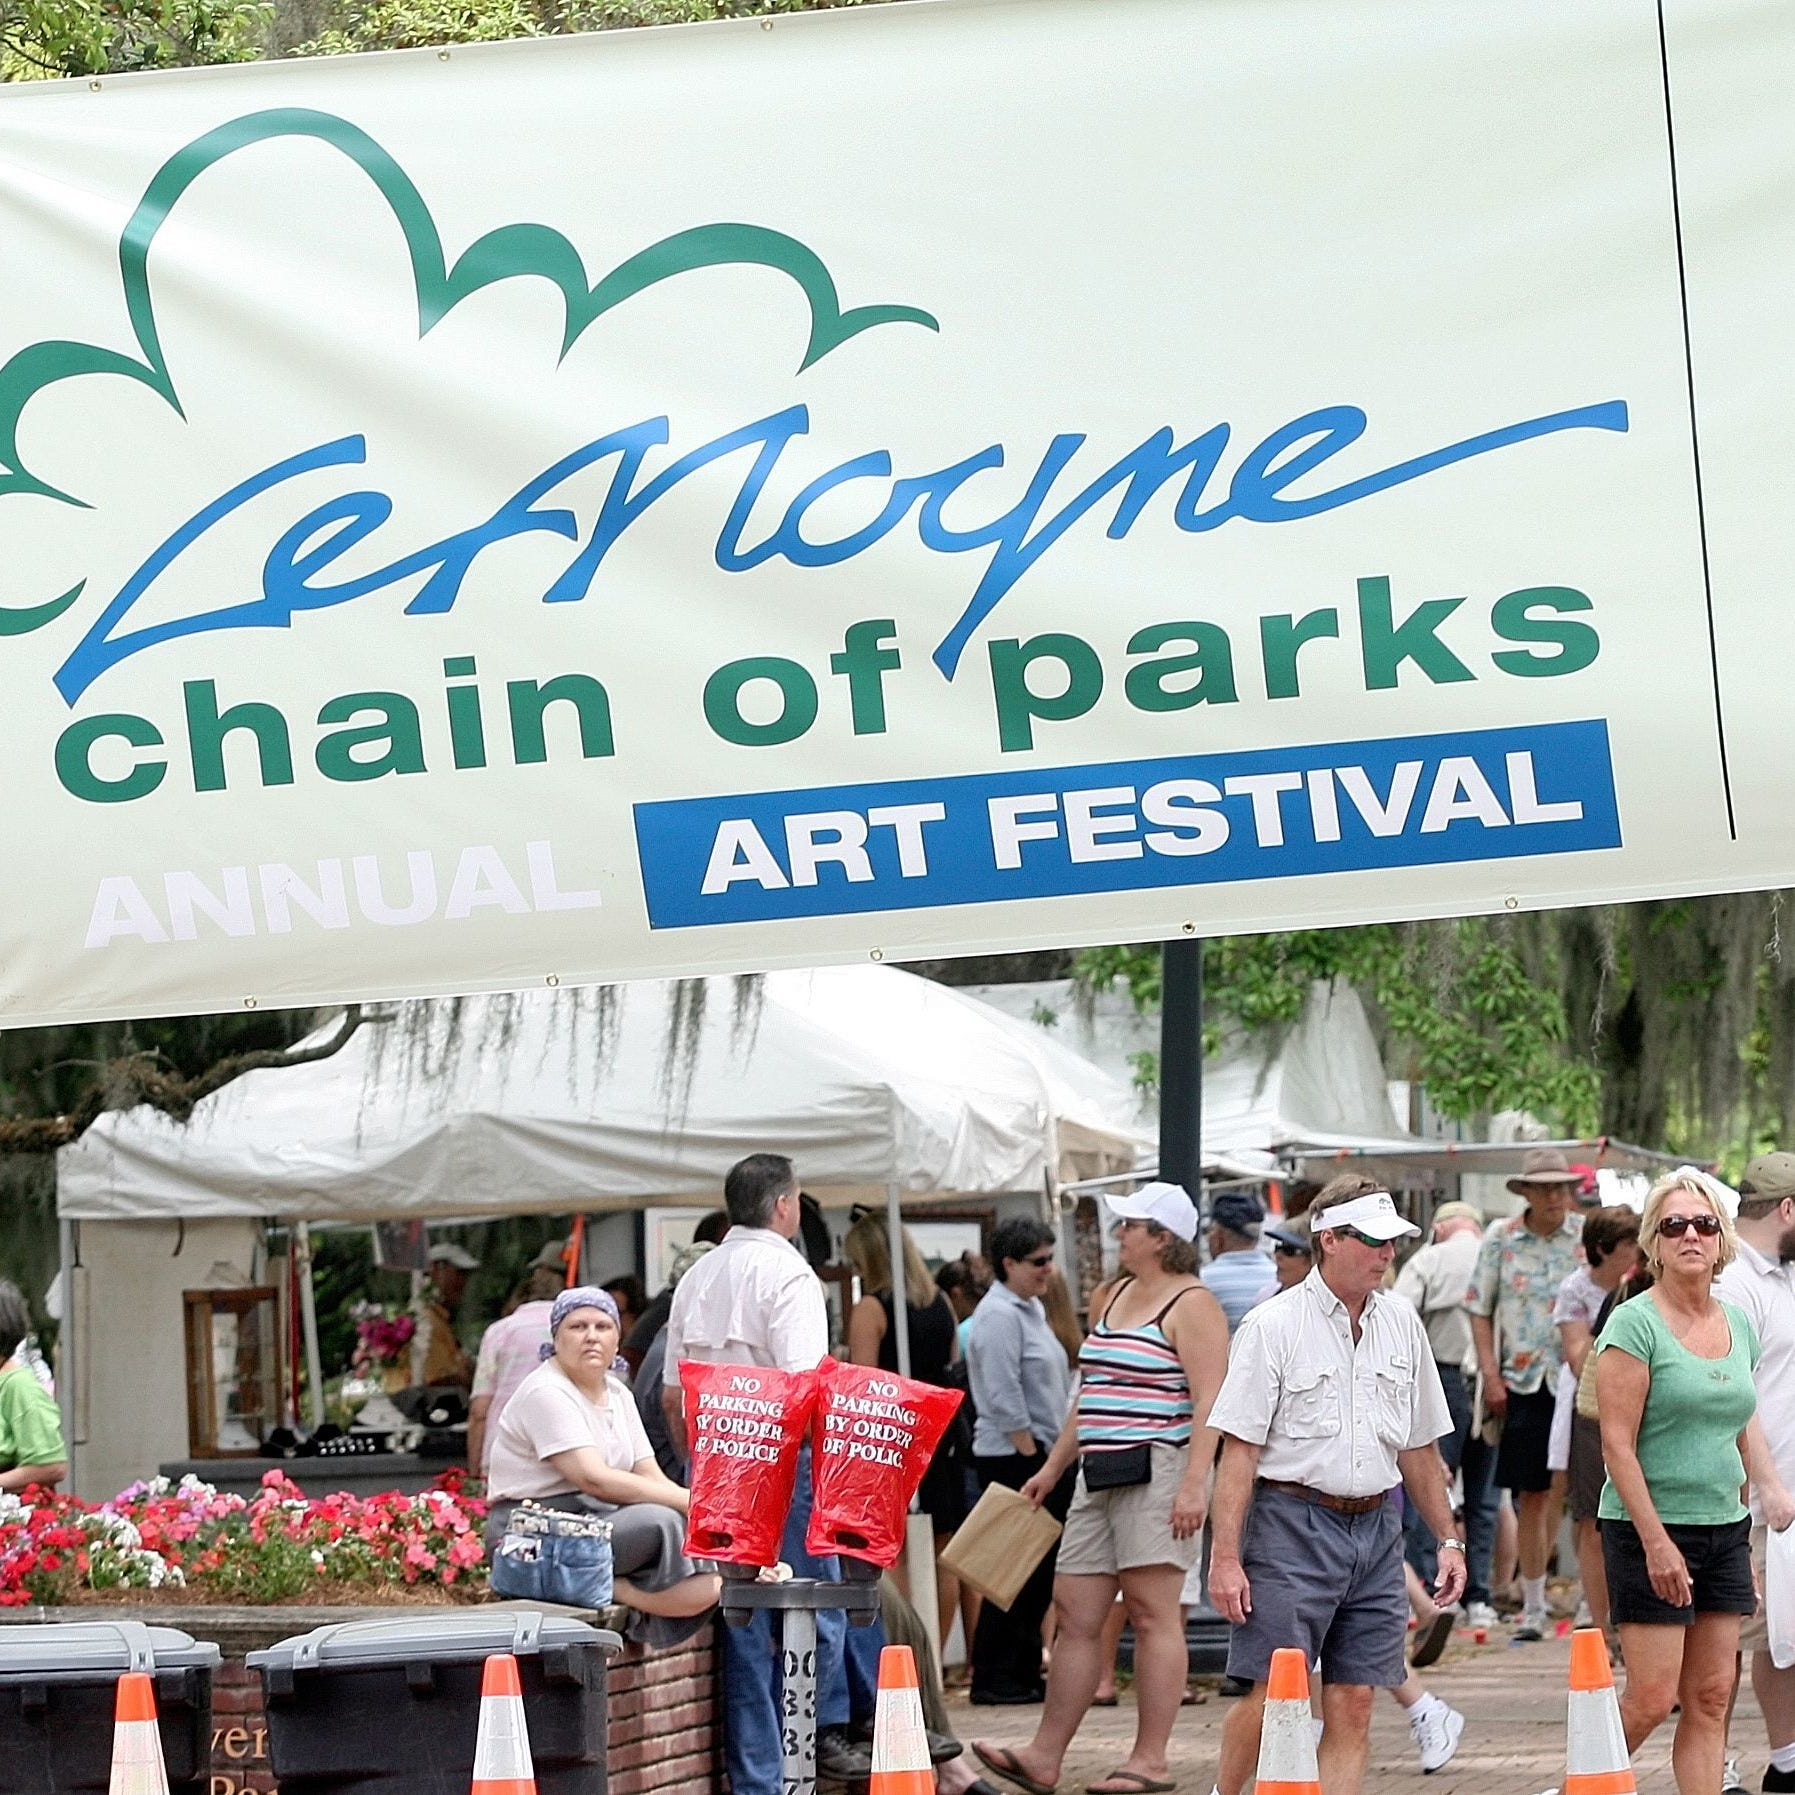 Get thee to a festival: Art in the park, jazz at the museum, sailing at Shell Point